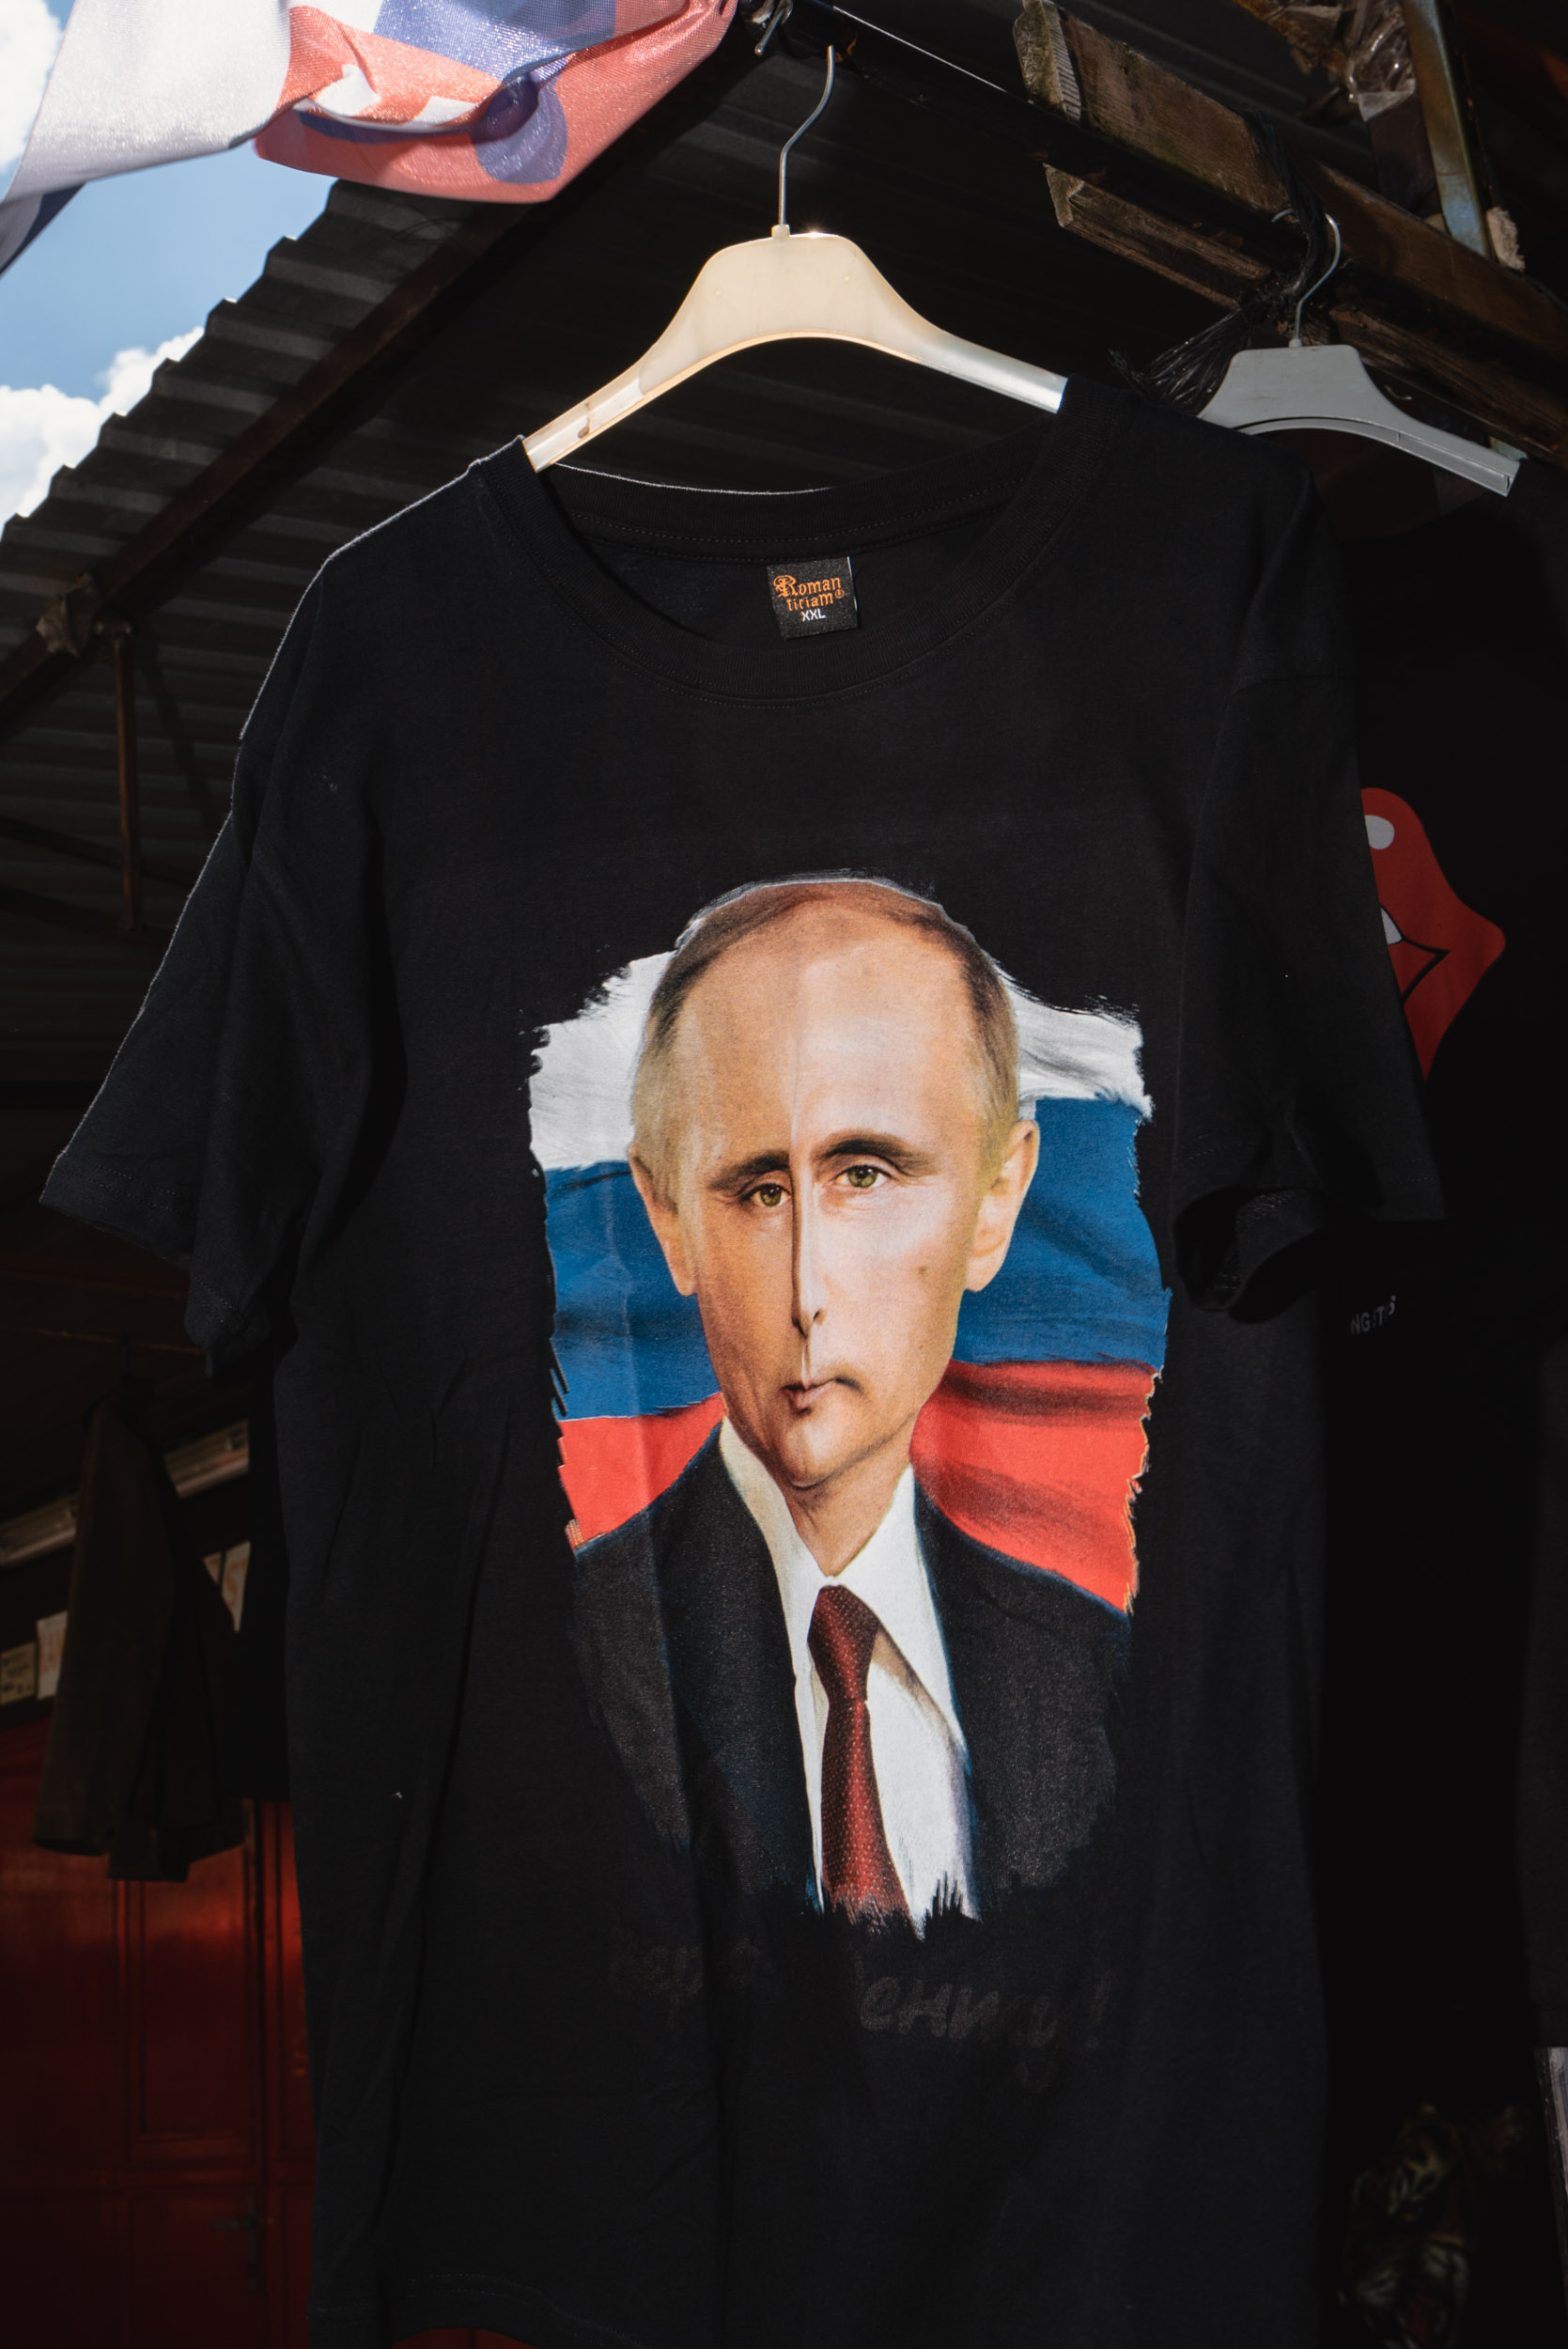 Vladimir Putin t-shirt at Marketplace Miletičova